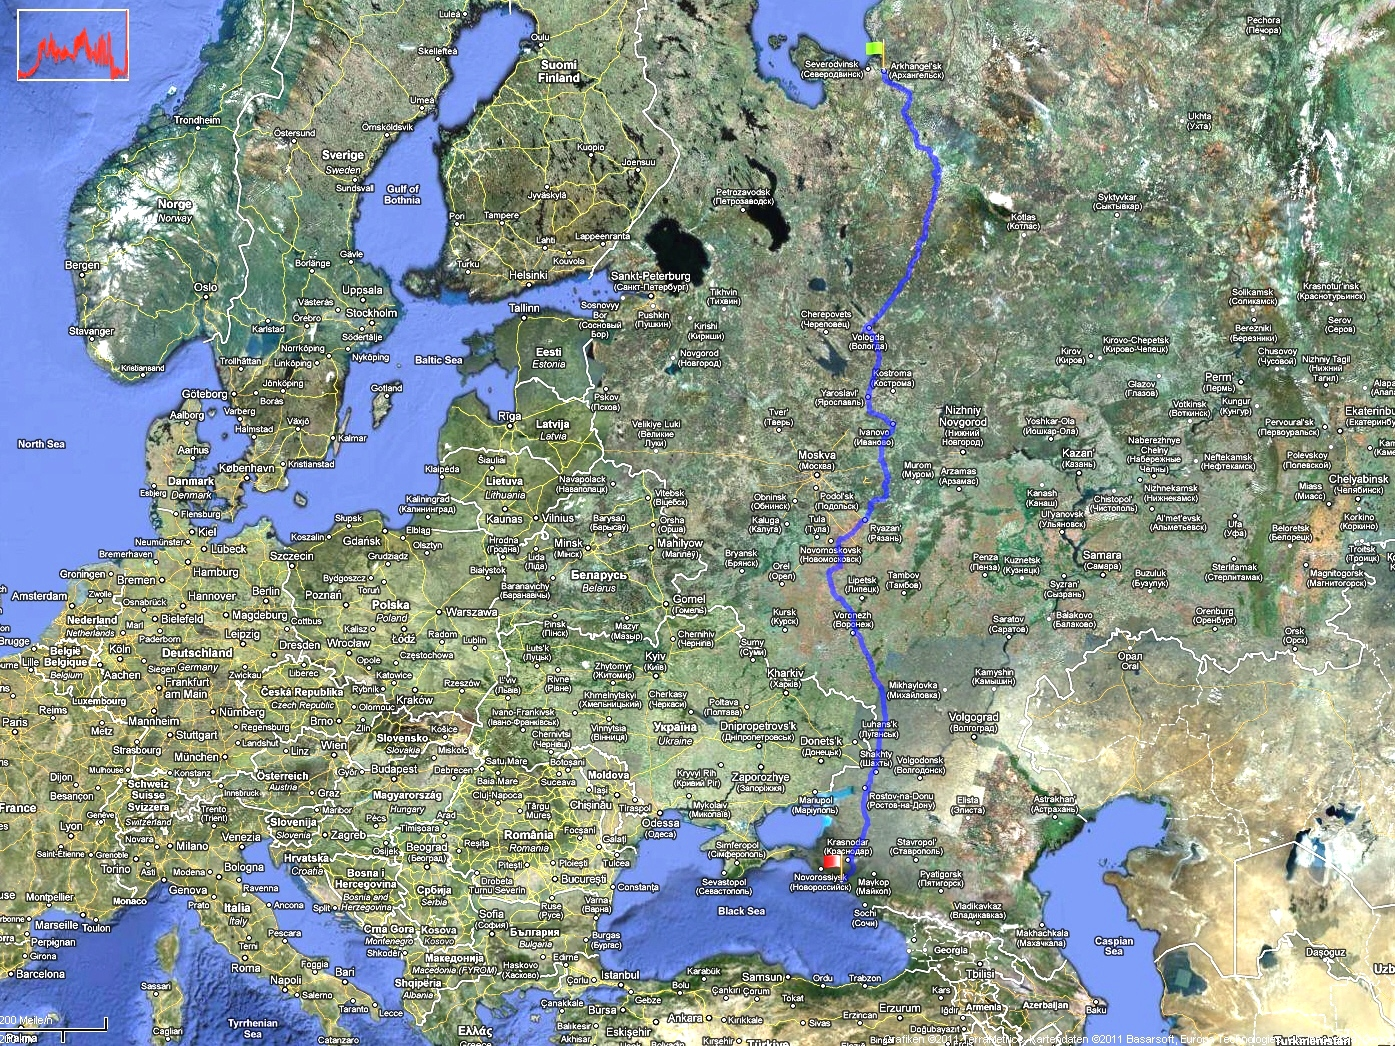 The route - from the White Sea to the Black Sea